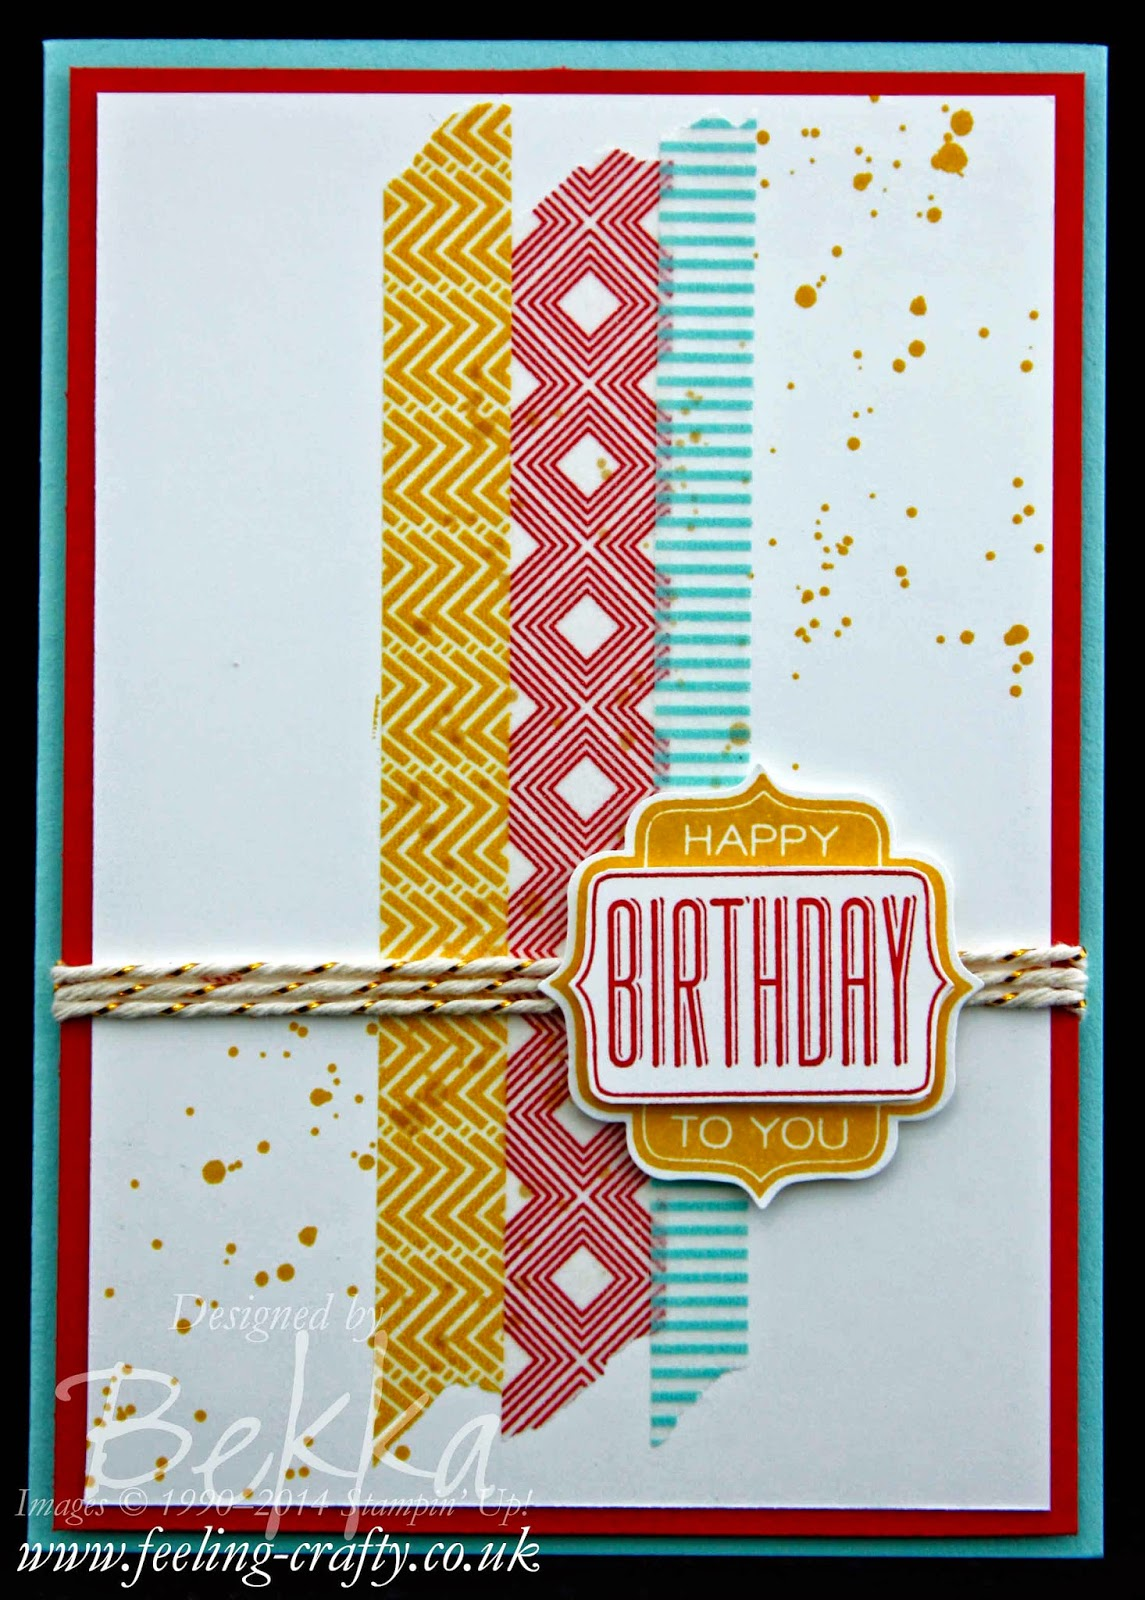 Birthday Card for a Man using Tag talk from Stampin' Up! UK Independent Demonstrator Bekka - check her blog for lots of great ideas